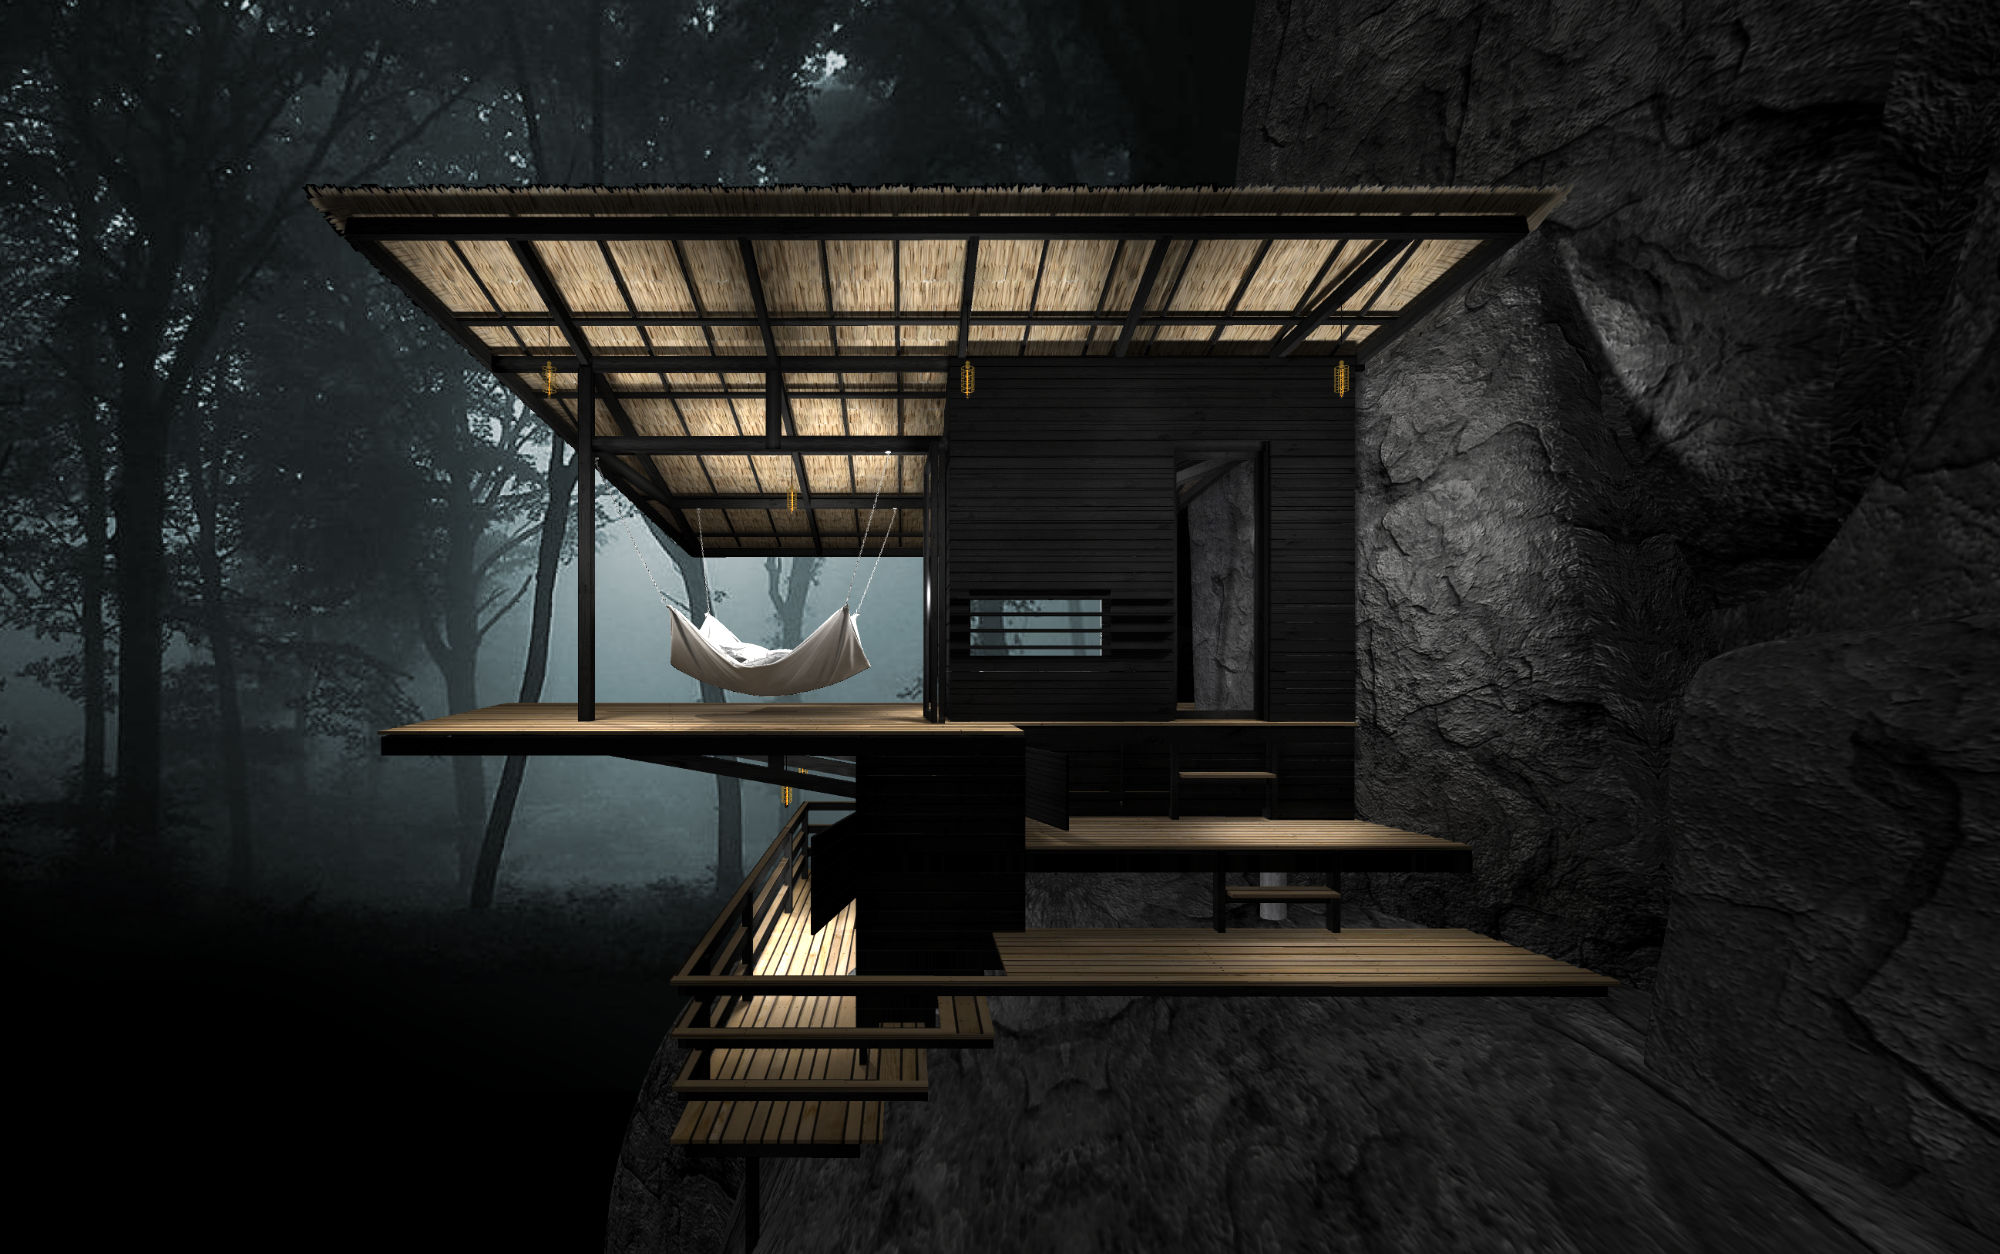 Richard Conner Architect Artist Cave 2.0 Entrance Panoramic CROP 2000px 80PC.jpg